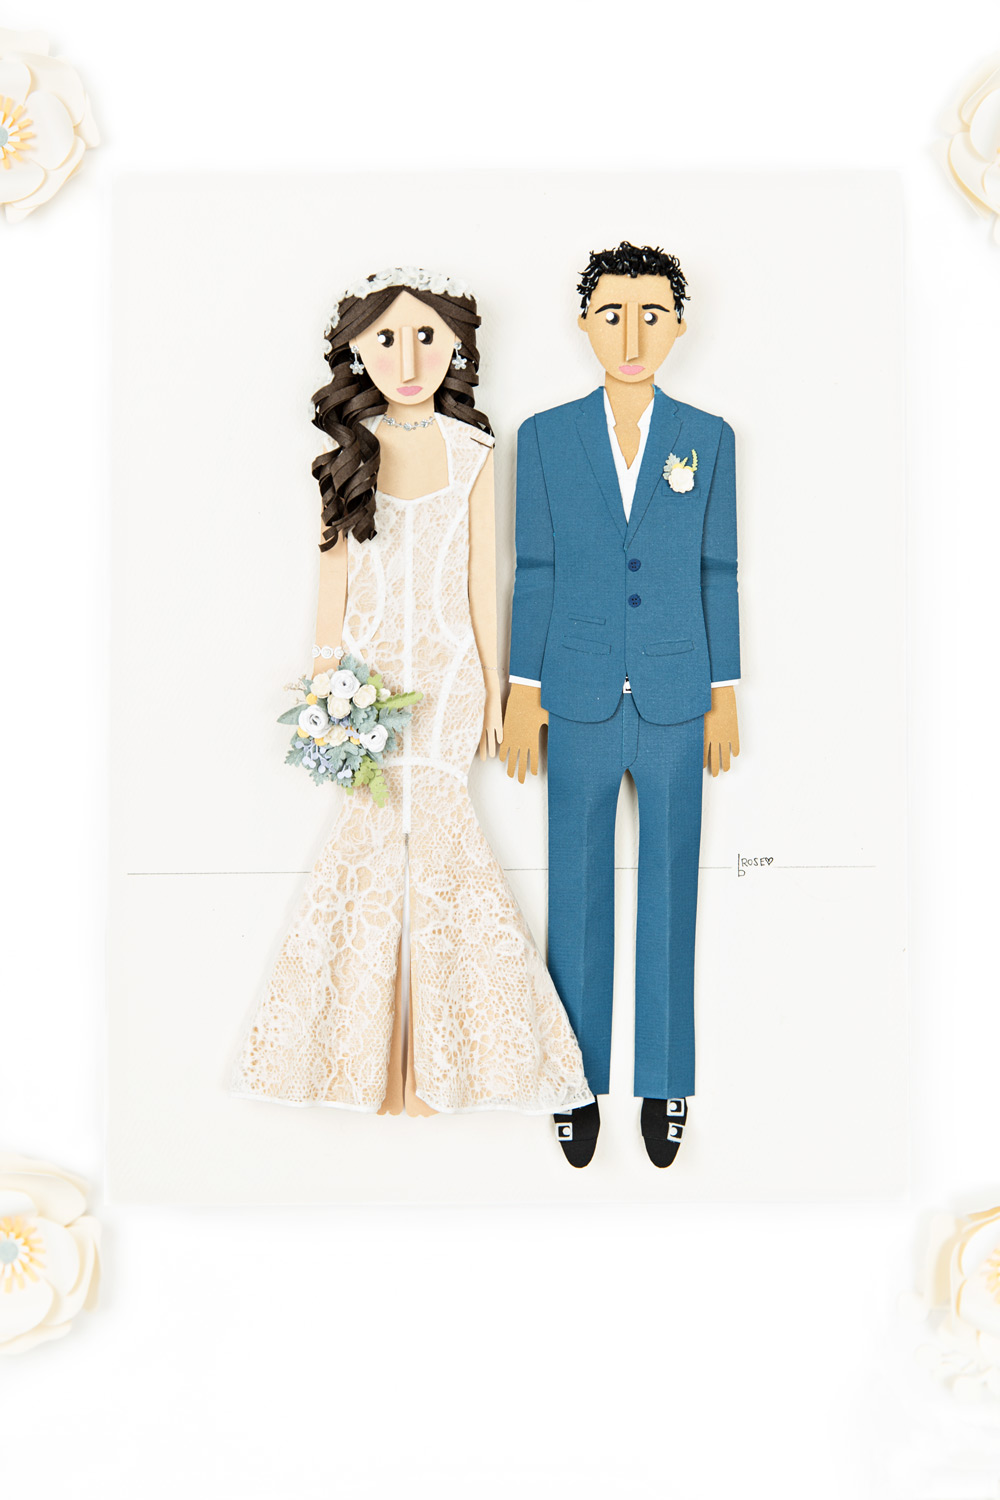 Paper doll wedding couple made by hand by Brittani Rose Paper in San Diego, #WeddingMinimalismProject by Cavin Elizabeth Photography